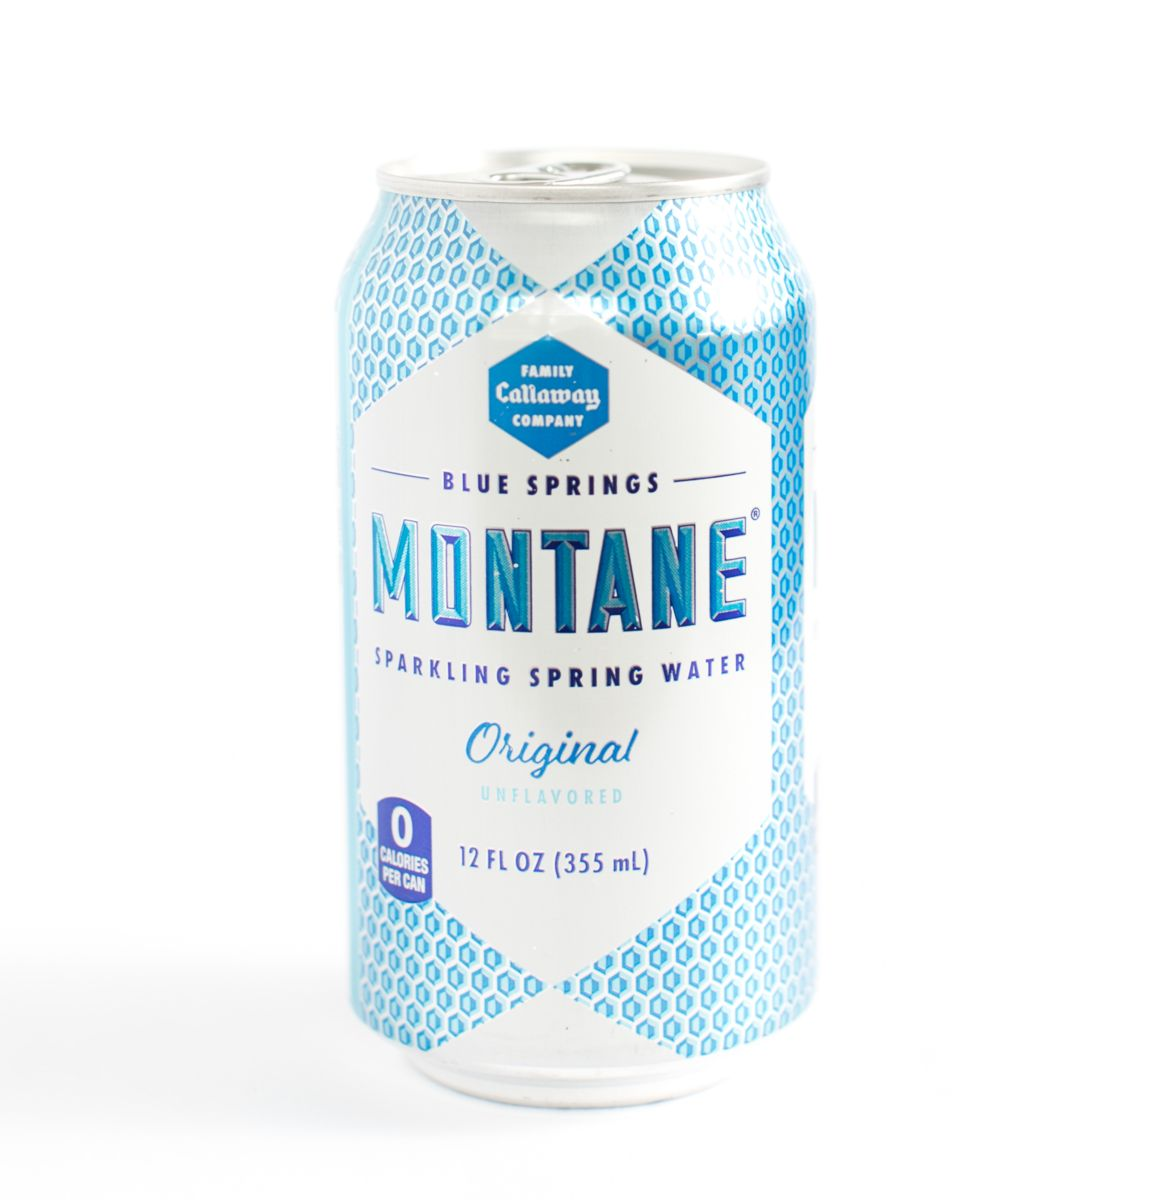 Sparkling Spring Water by Montane Sparkling Spring Water